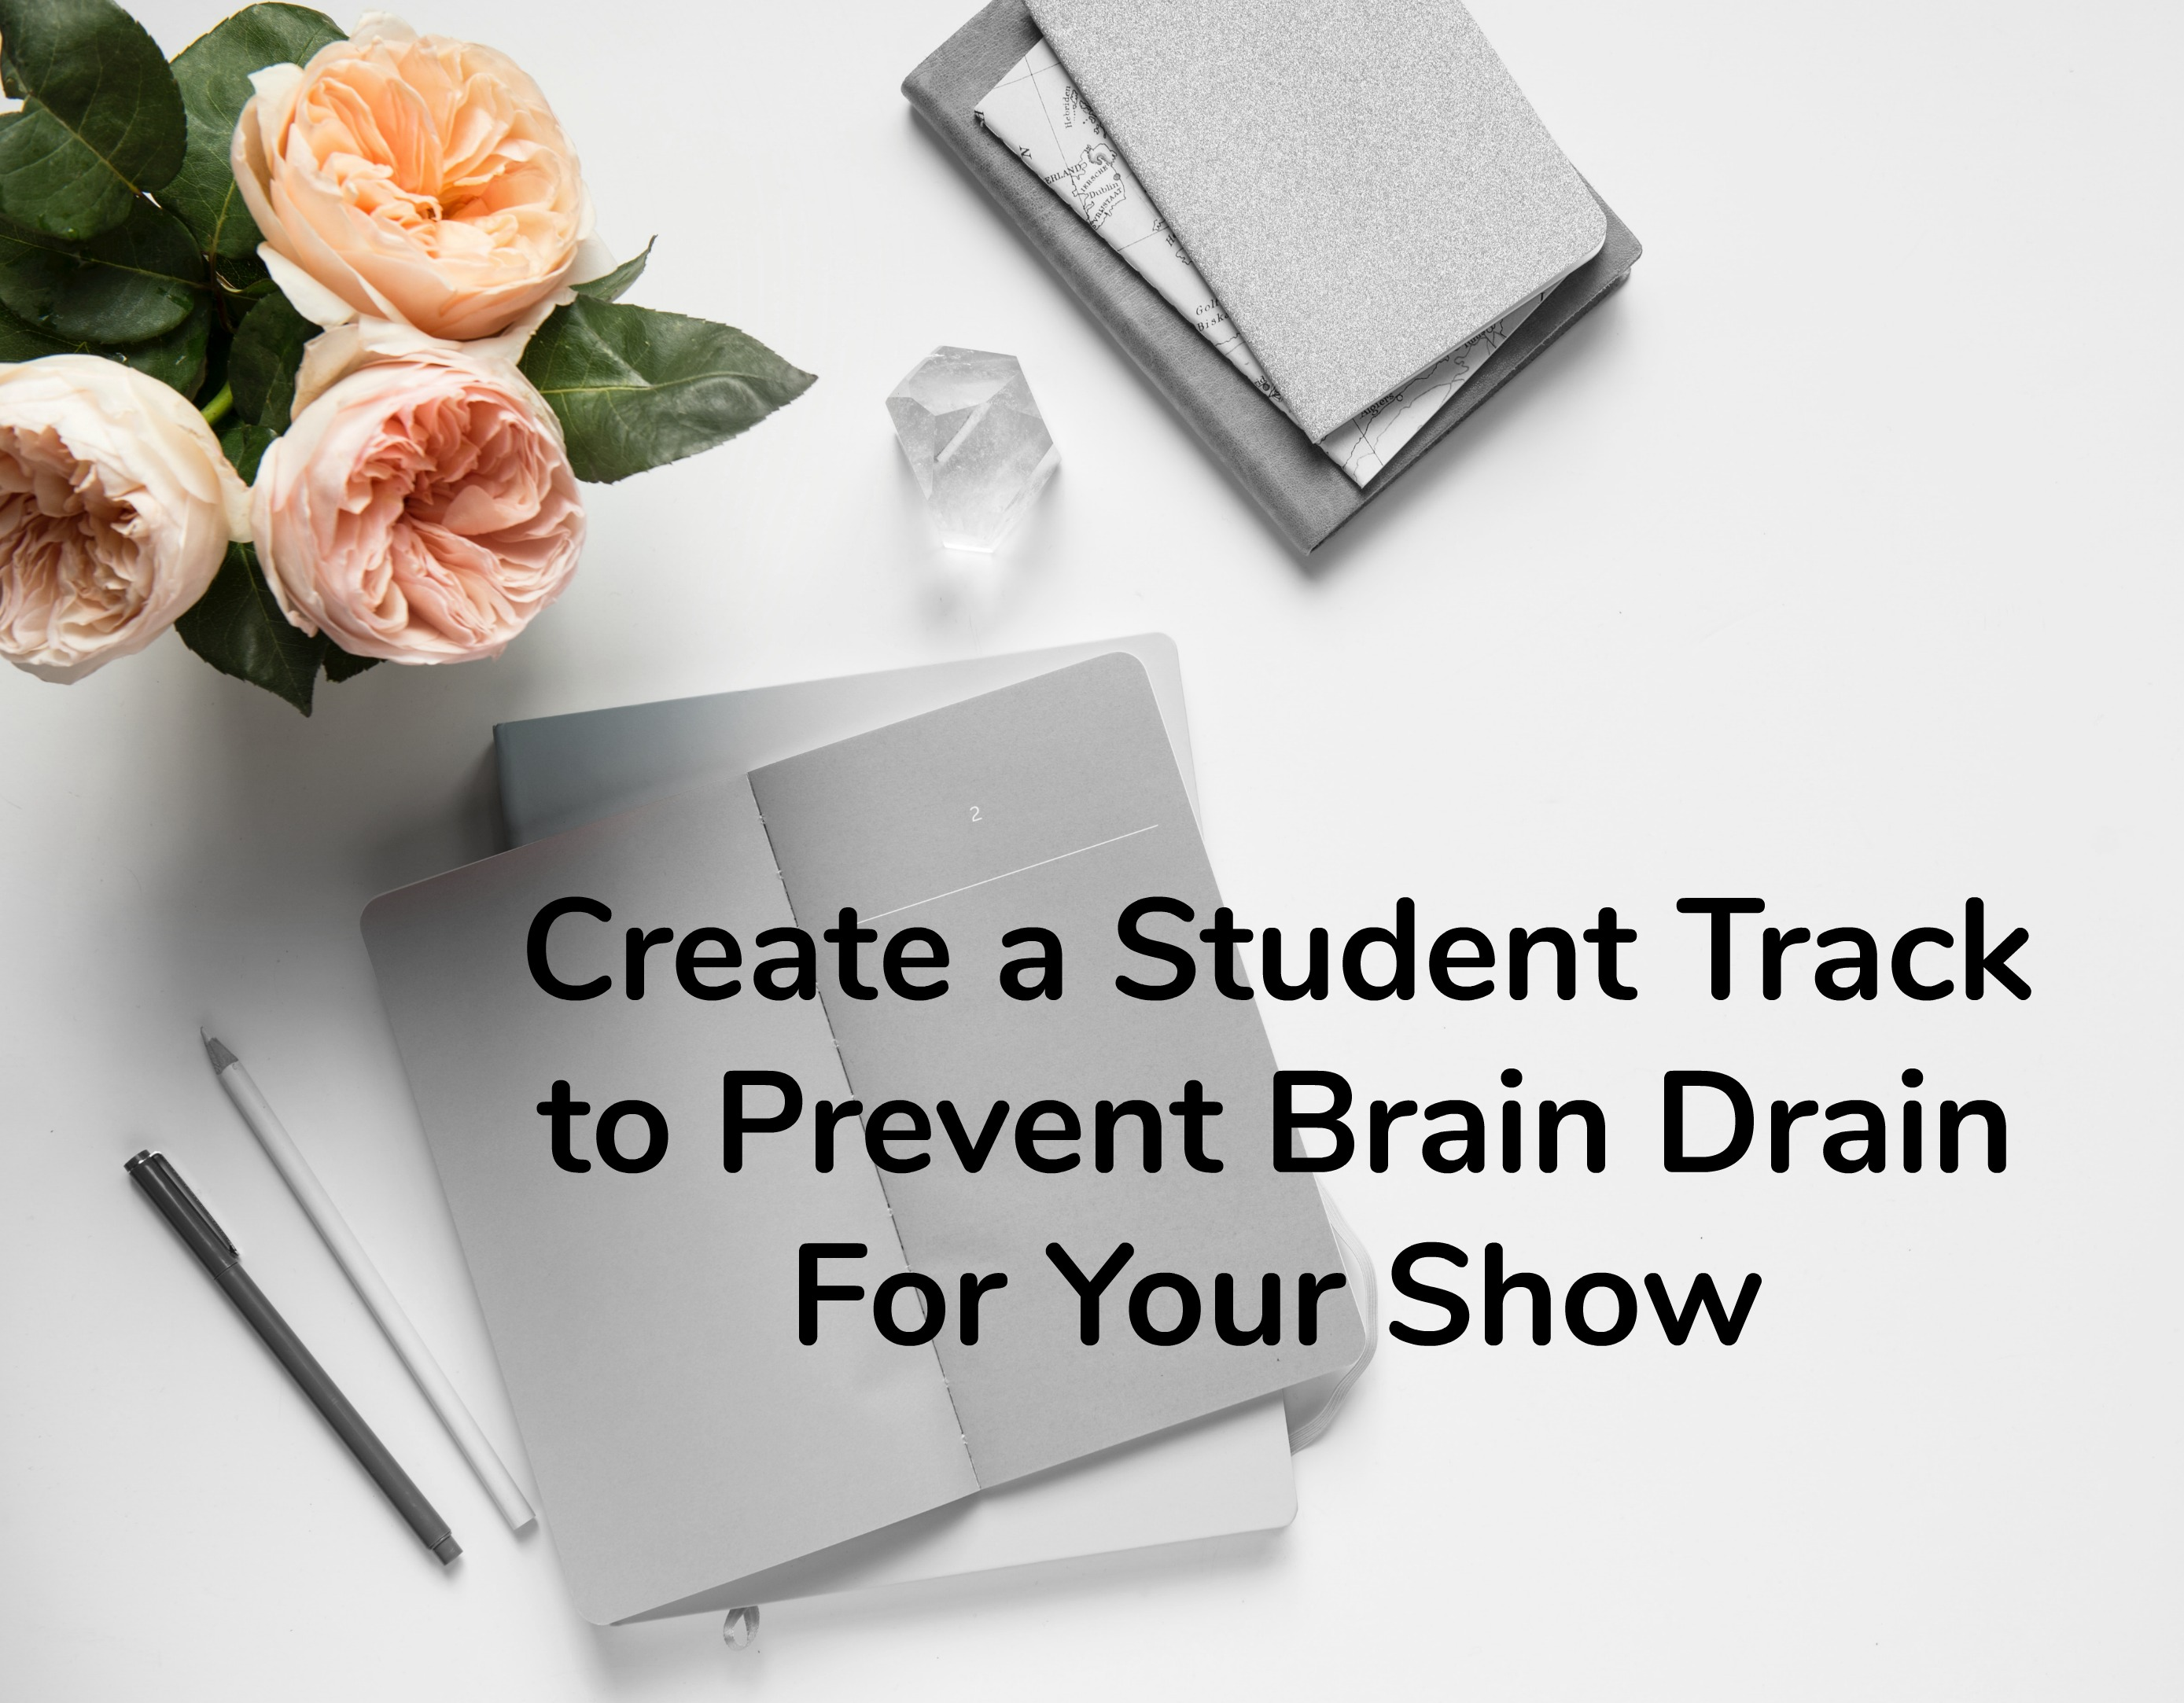 Create a Student track to Prevent Brain Drain For Your Show